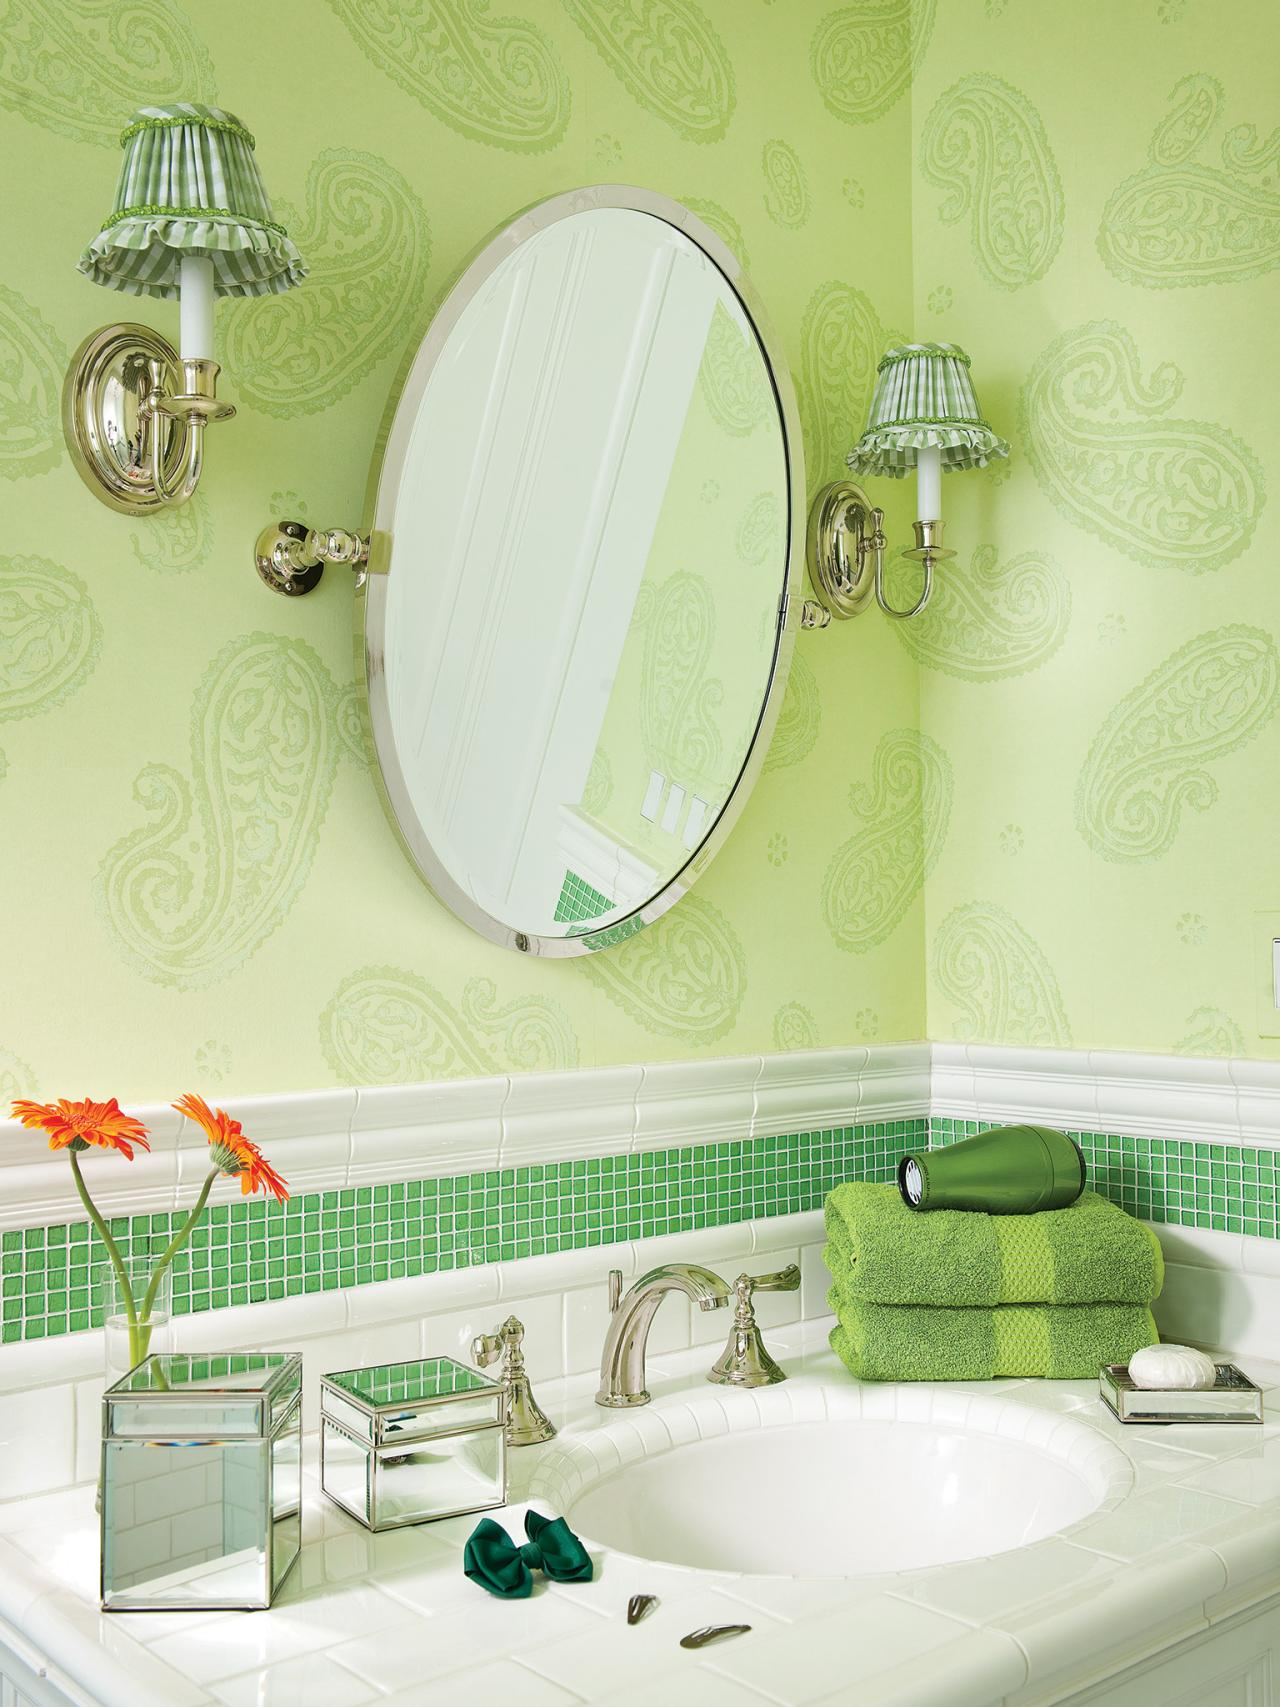 CI-Allure-of-French-and-Italian-Decor_Green-White-Bathroom-Pg79_3x4.jpg.rend_.hgtvcom.1280.1707